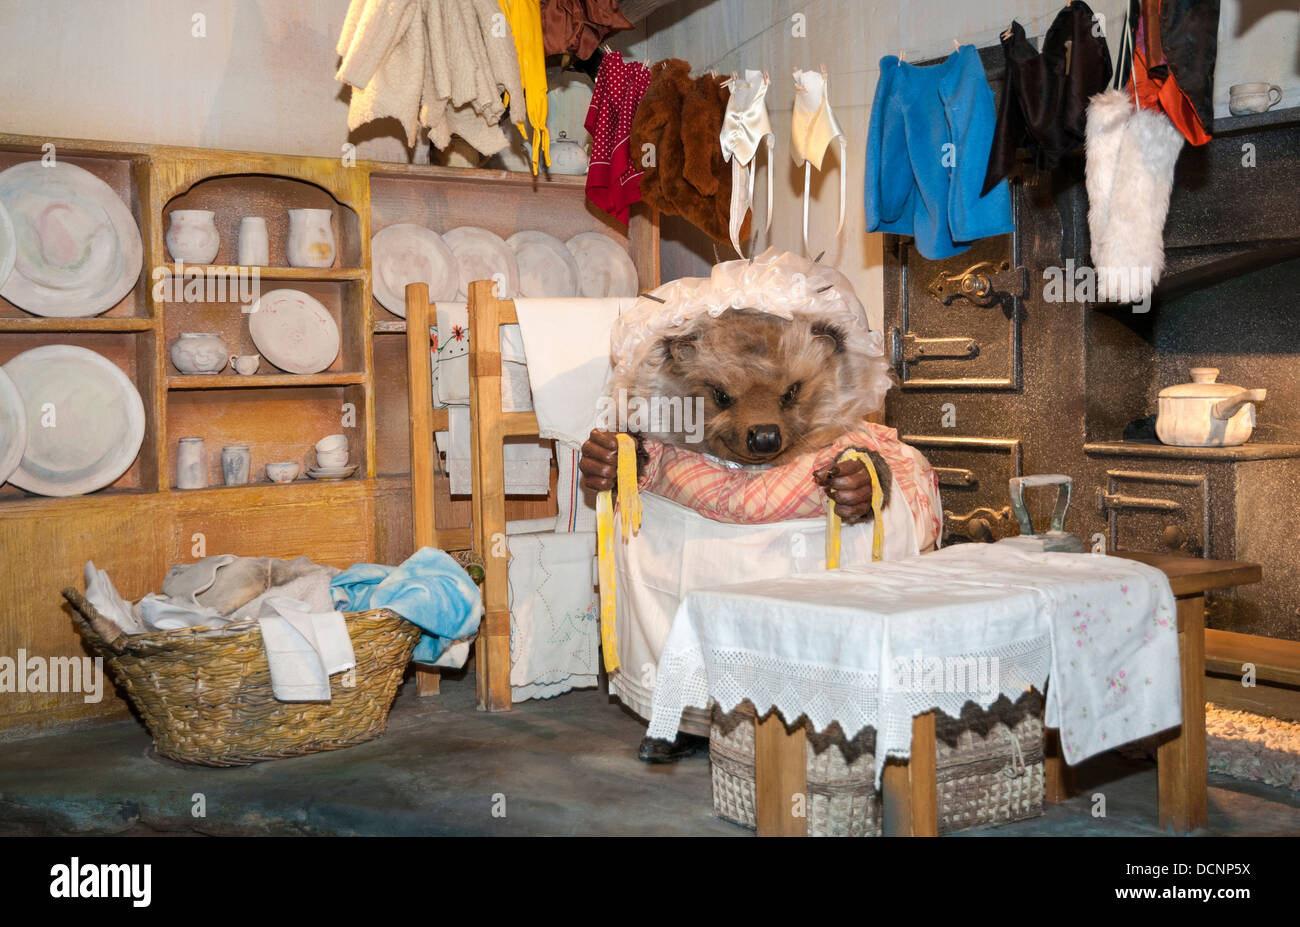 Great Britain, England, Cumbria, Lake District, Bowness-on-Windermere, World of Beatrix Potter, Mrs. Tiggy-Winkle - Stock Image